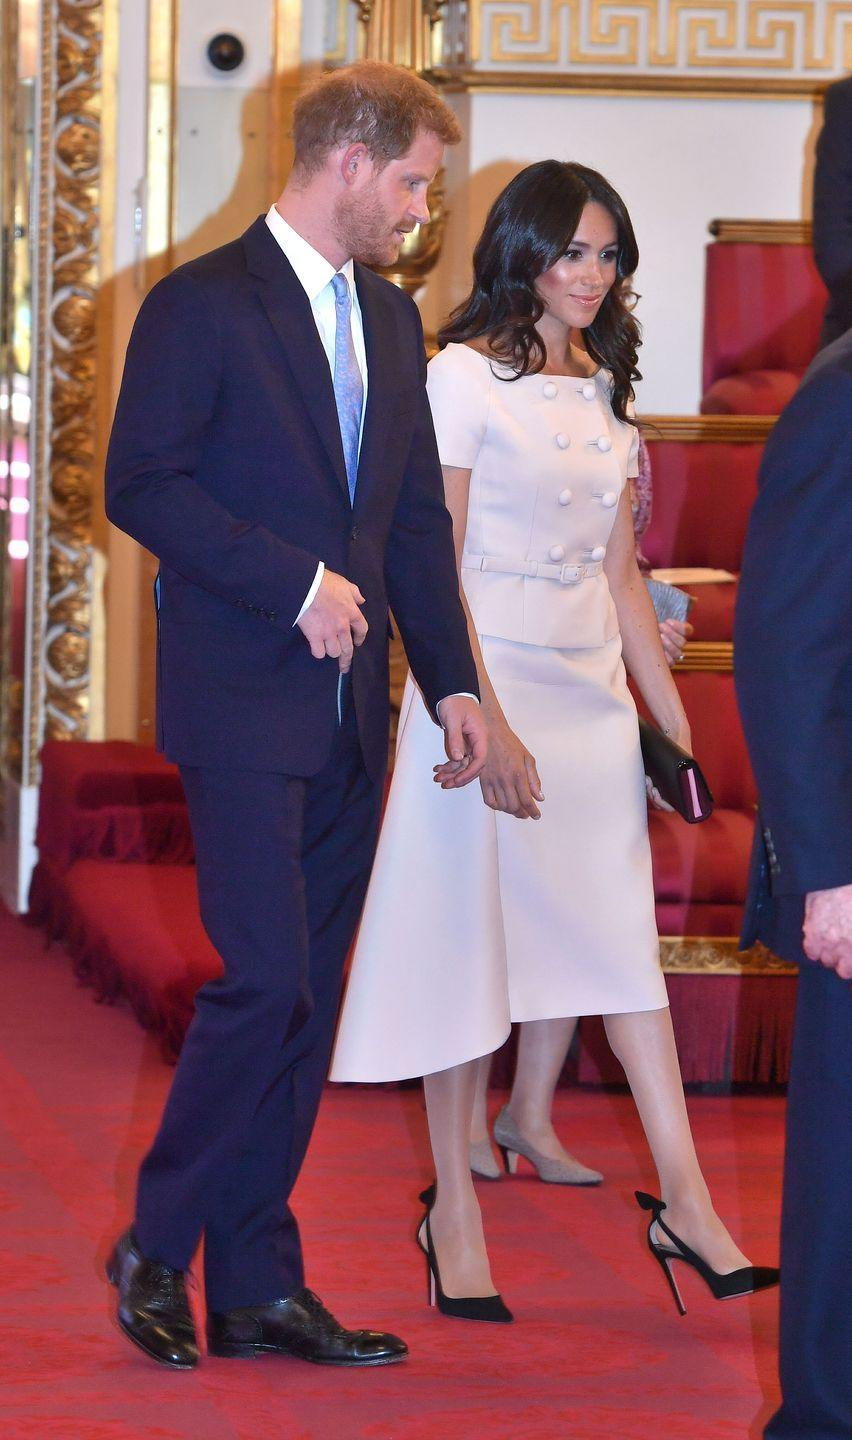 """<p>Meghan wore <a href=""""https://www.townandcountrymag.com/style/fashion-trends/a21948625/meghan-markle-pink-dress-queen-young-leaders-awards-2018/"""" rel=""""nofollow noopener"""" target=""""_blank"""" data-ylk=""""slk:a gorgeous pink dress by Prada"""" class=""""link rapid-noclick-resp"""">a gorgeous pink dress by Prada</a> to the Queen's Young Leaders Awards ceremony, held at Buckingham Palace. The Duchess completed her outfit with a Prada bag and a pair of black heels by <a href=""""https://go.redirectingat.com?id=74968X1596630&url=https%3A%2F%2Fshop.nordstrom.com%2Fs%2Faquazzura-deneuve-bow-pointy-toe-pump-women%2F4948641&sref=https%3A%2F%2Fwww.townandcountrymag.com%2Fstyle%2Ffashion-trends%2Fg3272%2Fmeghan-markle-preppy-style%2F"""" rel=""""nofollow noopener"""" target=""""_blank"""" data-ylk=""""slk:Aquazzura, which are still available to purchase."""" class=""""link rapid-noclick-resp"""">Aquazzura, which are still available to purchase.</a></p><p><a class=""""link rapid-noclick-resp"""" href=""""https://go.redirectingat.com?id=74968X1596630&url=https%3A%2F%2Fshop.nordstrom.com%2Fs%2Faquazzura-deneuve-bow-pointy-toe-pump-women%2F4948641&sref=https%3A%2F%2Fwww.townandcountrymag.com%2Fstyle%2Ffashion-trends%2Fg3272%2Fmeghan-markle-preppy-style%2F"""" rel=""""nofollow noopener"""" target=""""_blank"""" data-ylk=""""slk:SHOP NOW"""">SHOP NOW</a> <em>Aquazzura Deneuve Bow Pointy Toe Pump, $750</em></p>"""